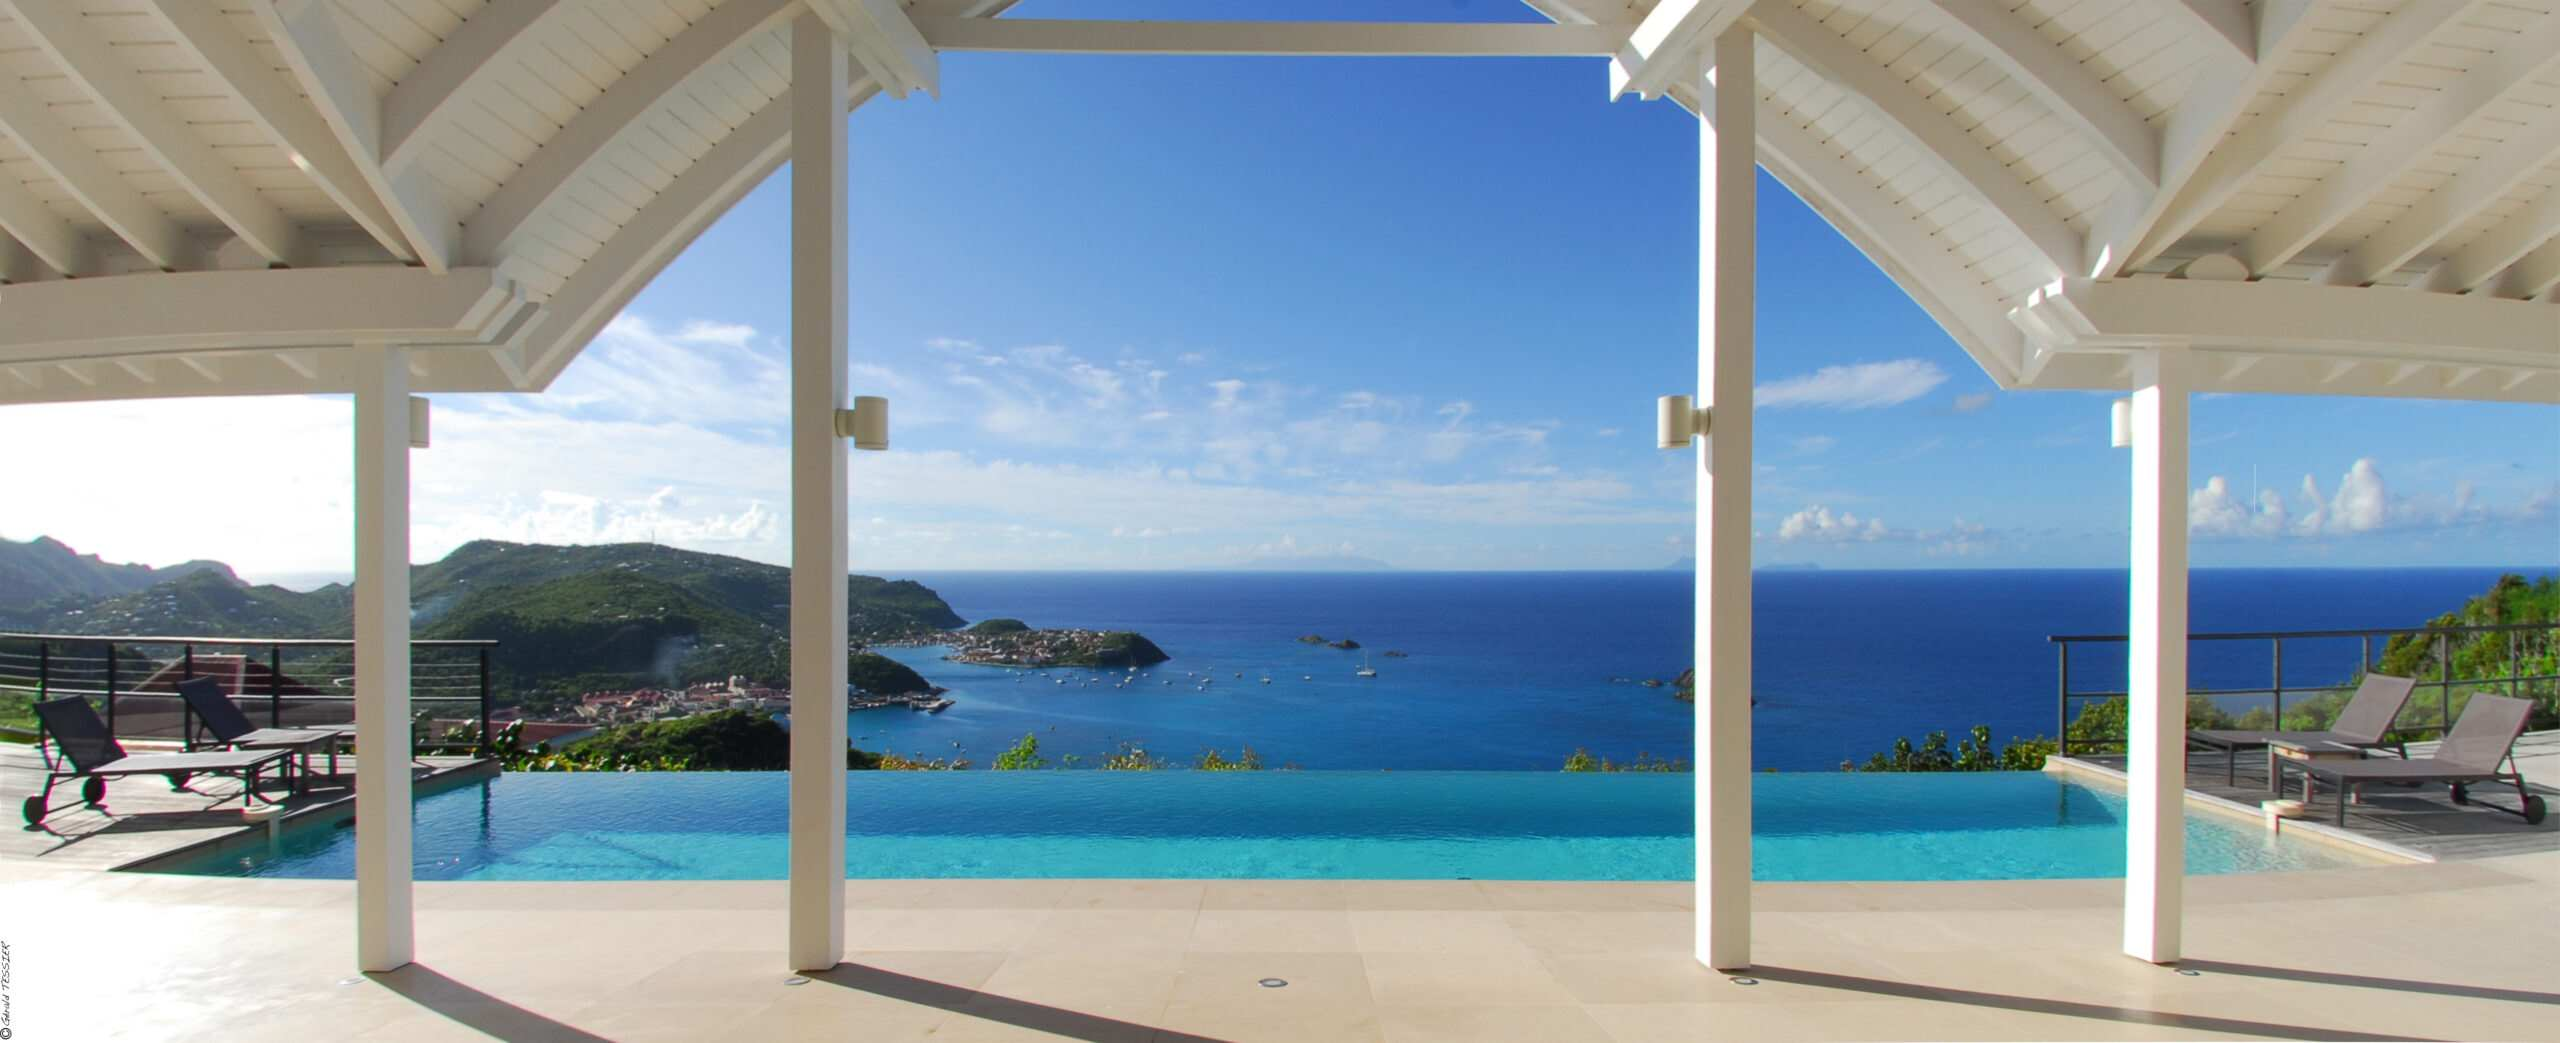 St Barts villas on the beach